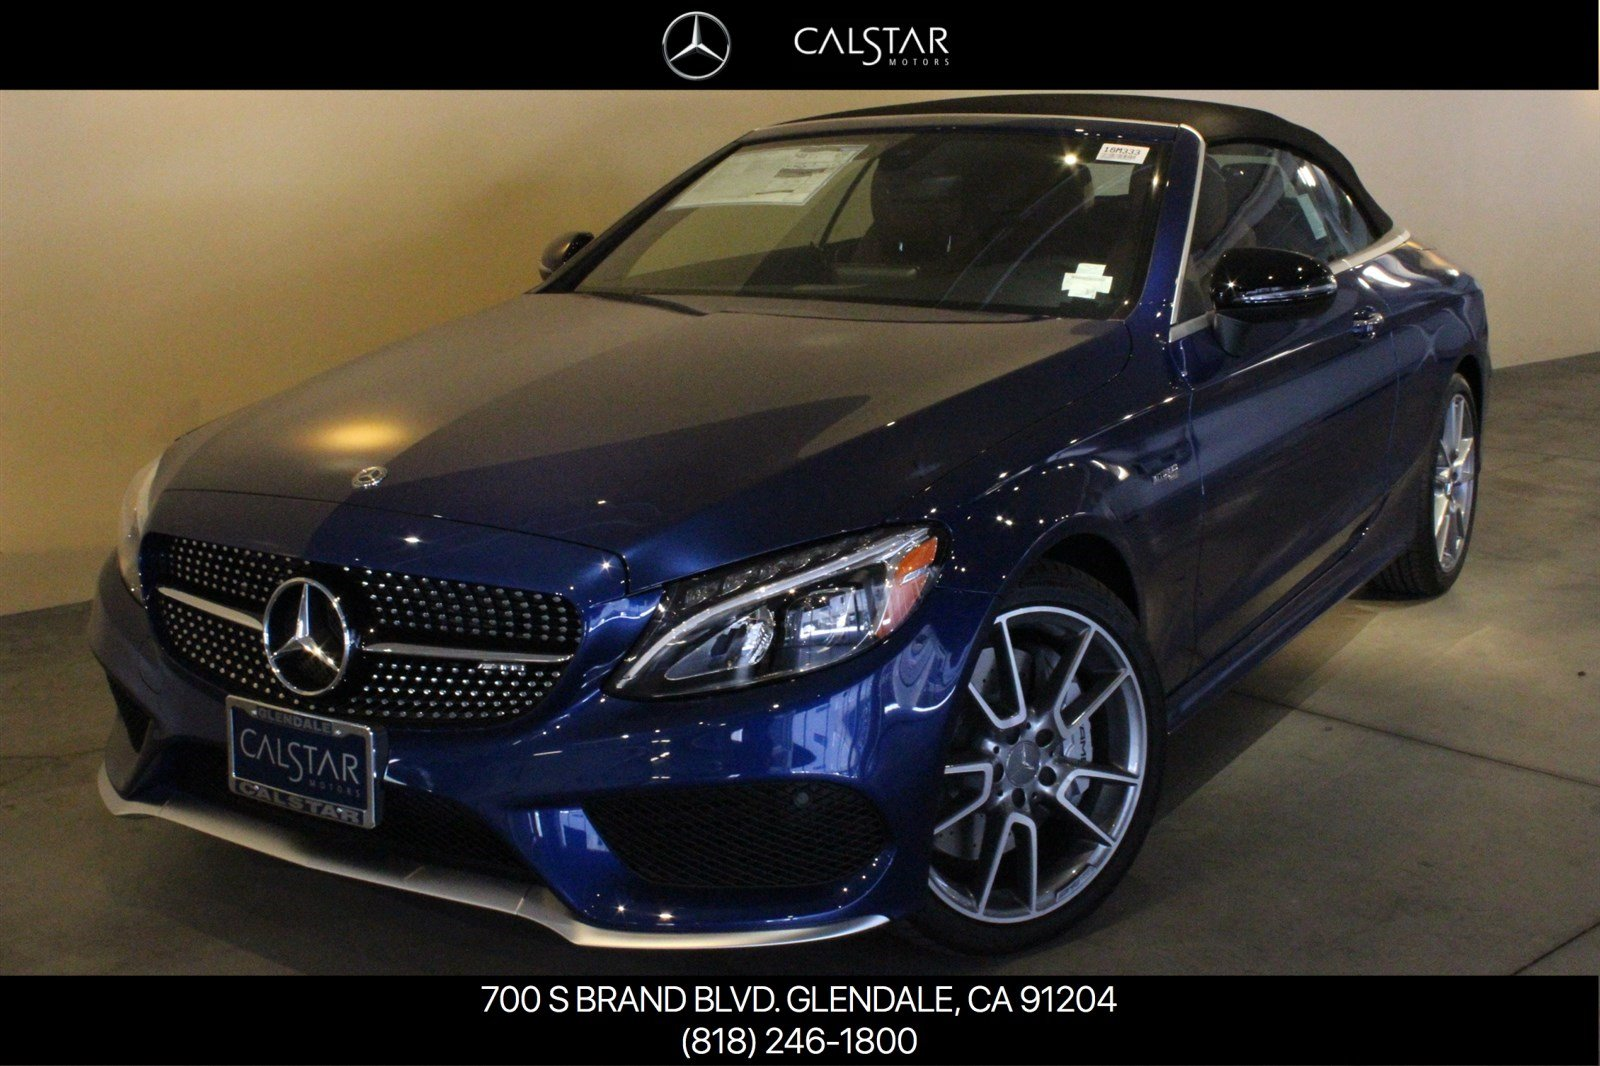 New 2018 mercedes benz c class amg c 43 cabriolet for Calstar mercedes benz